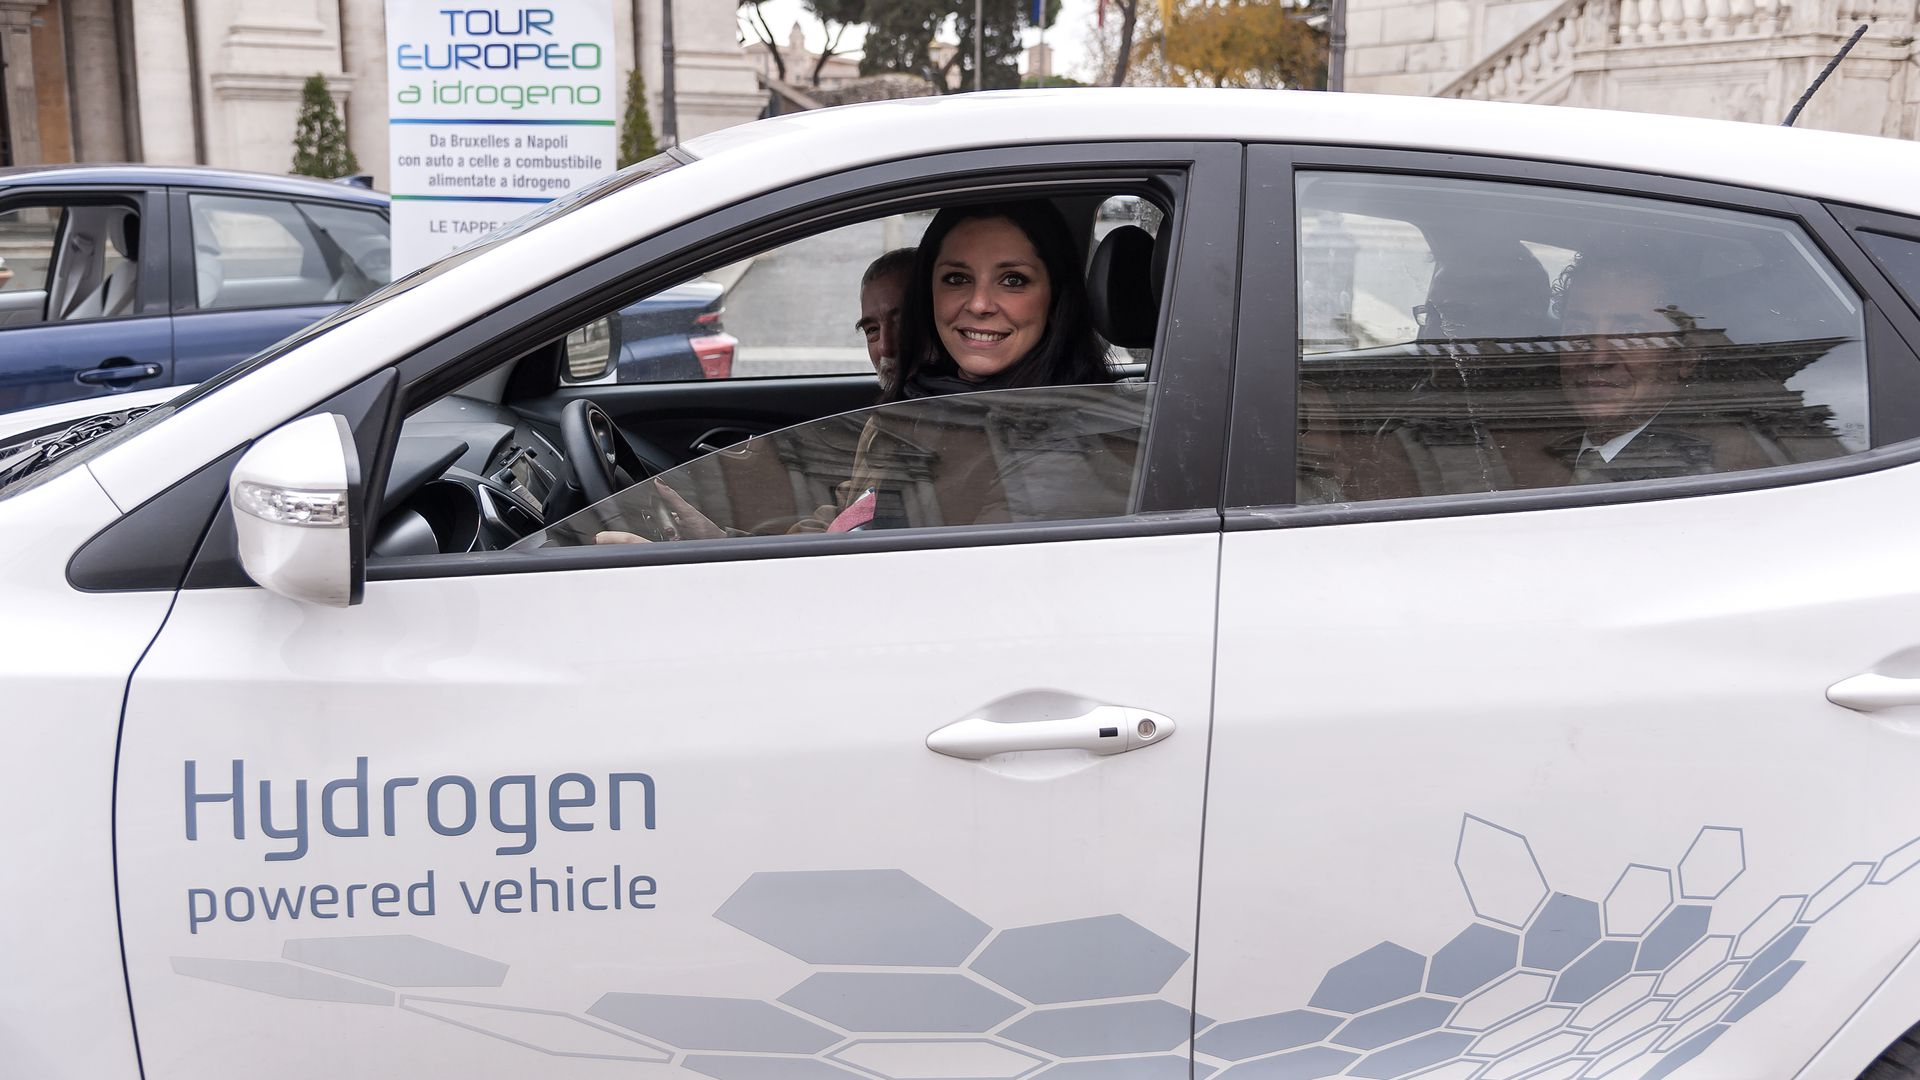 Linda Meleo Councillor for Mobility of Rome driving a hydrogen car in Campidoglio on December 9, 2017, in Rome, Italy.